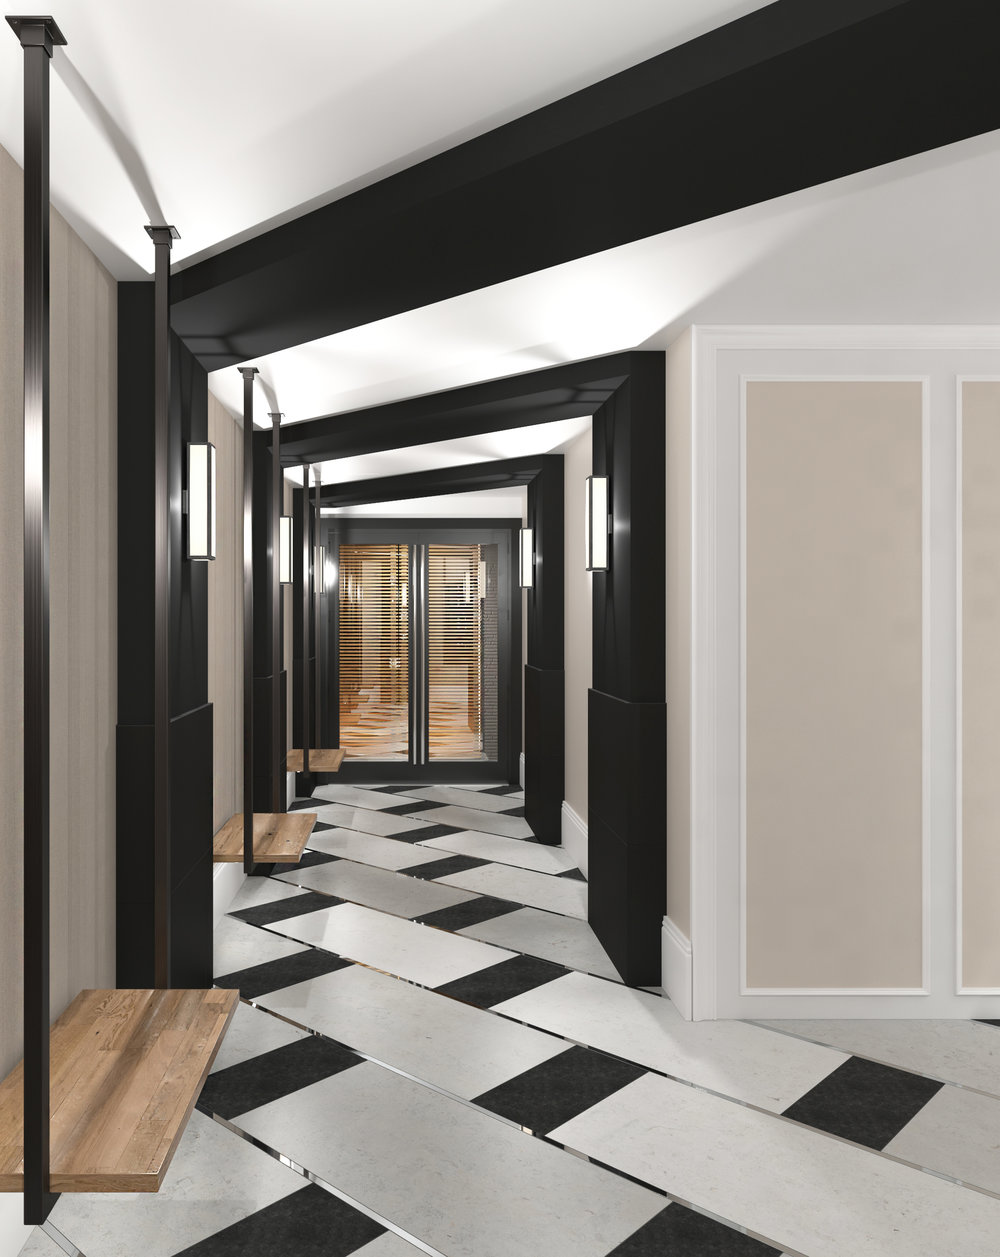 16_707 WILLOUGHBY LOBBY RENDERING 10.jpg